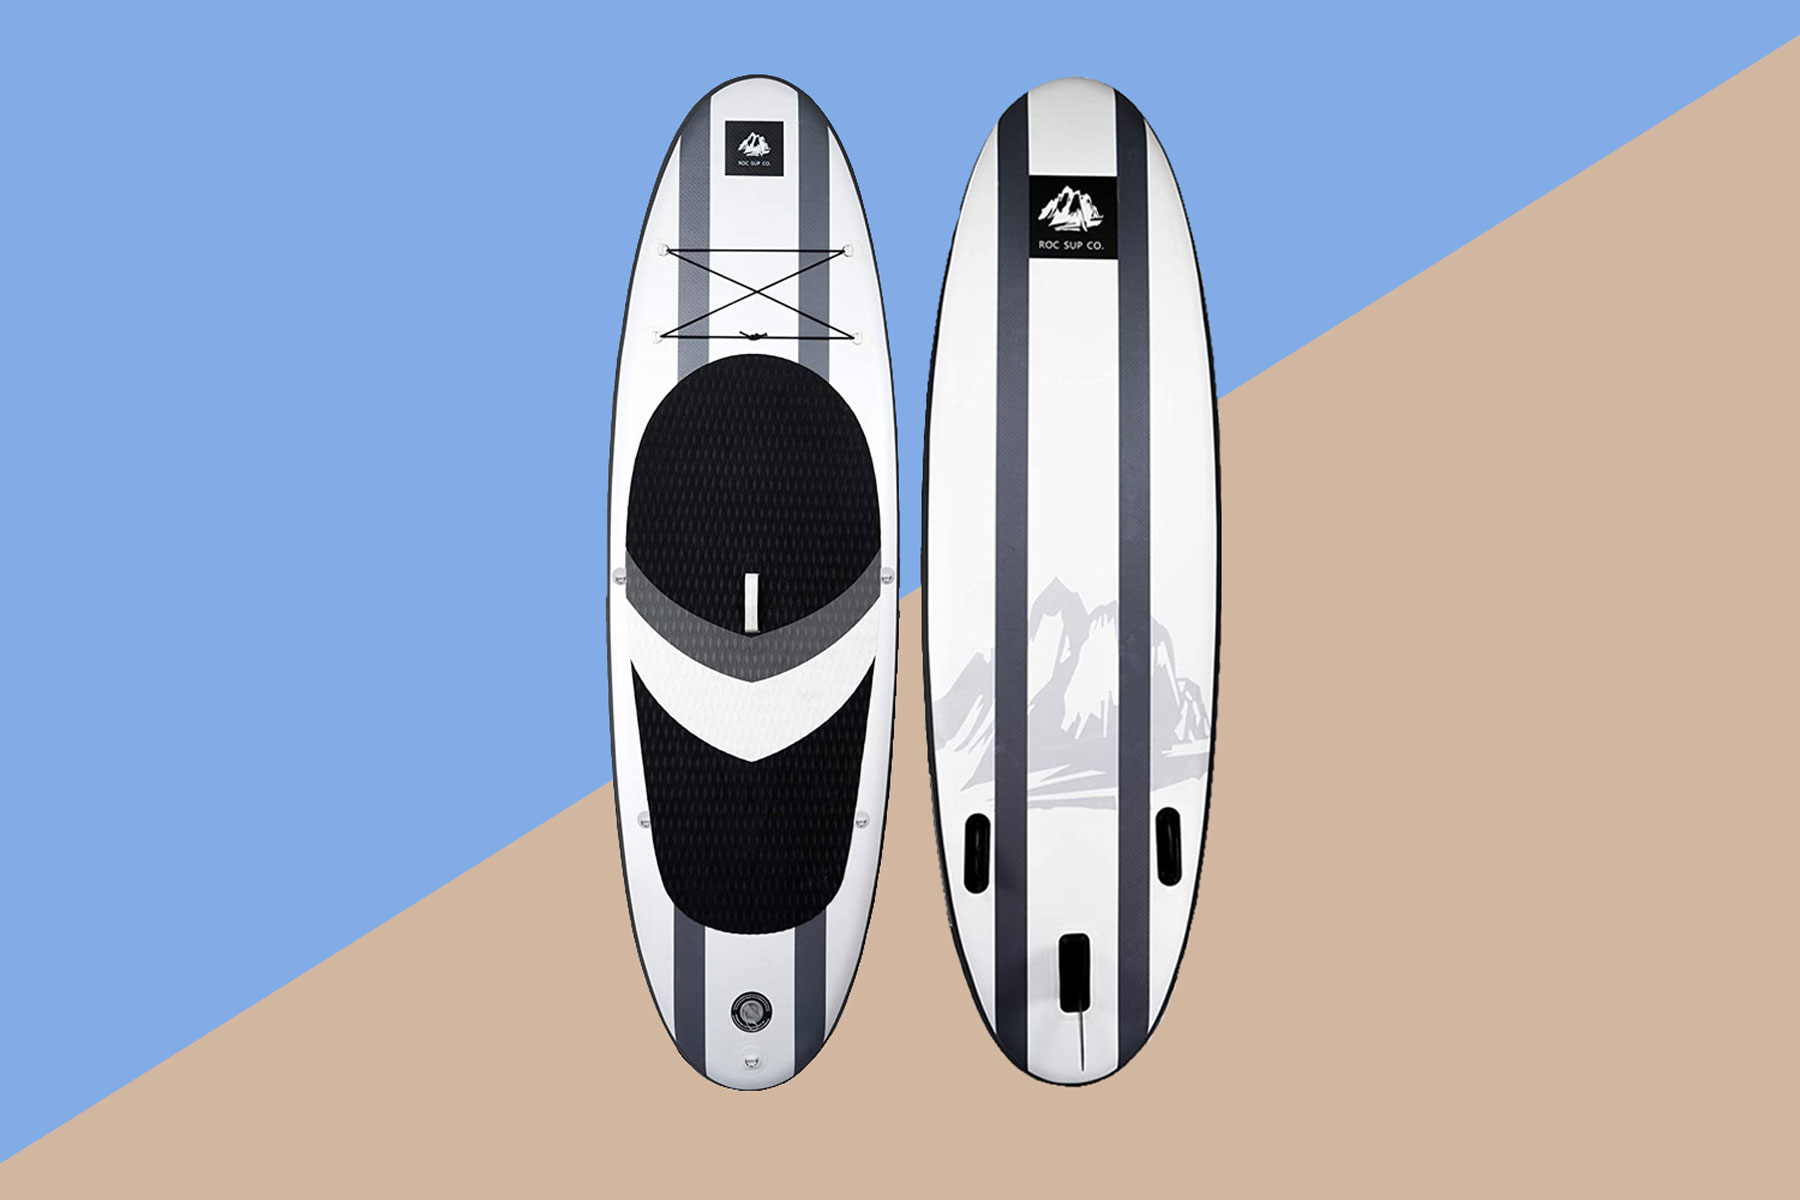 Black and white stand up paddle board